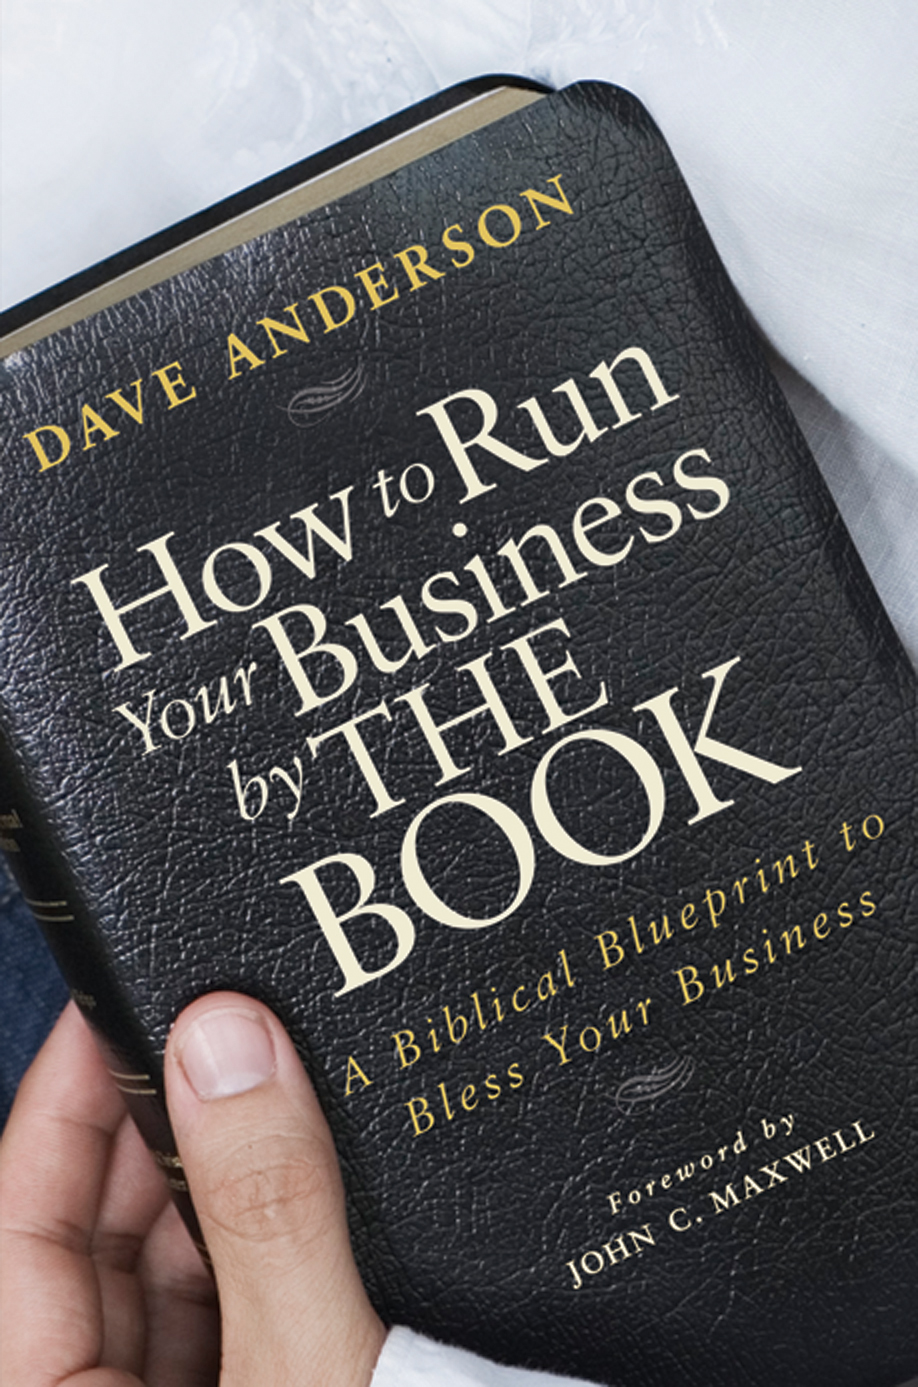 Dave Anderson How to Run Your Business by The Book. A Biblical Blueprint to Bless Your Business